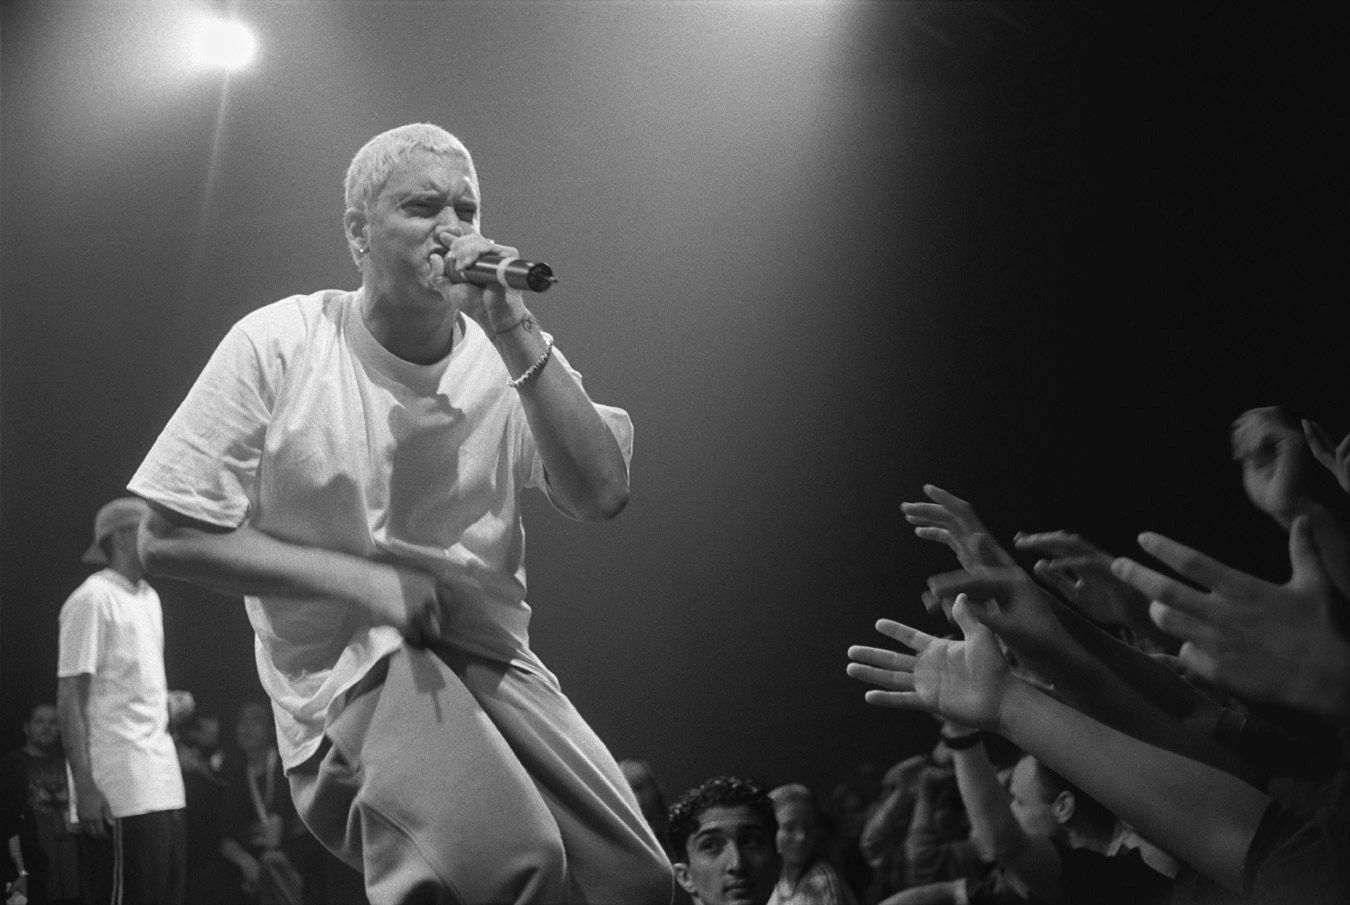 black and white Eminem on stage